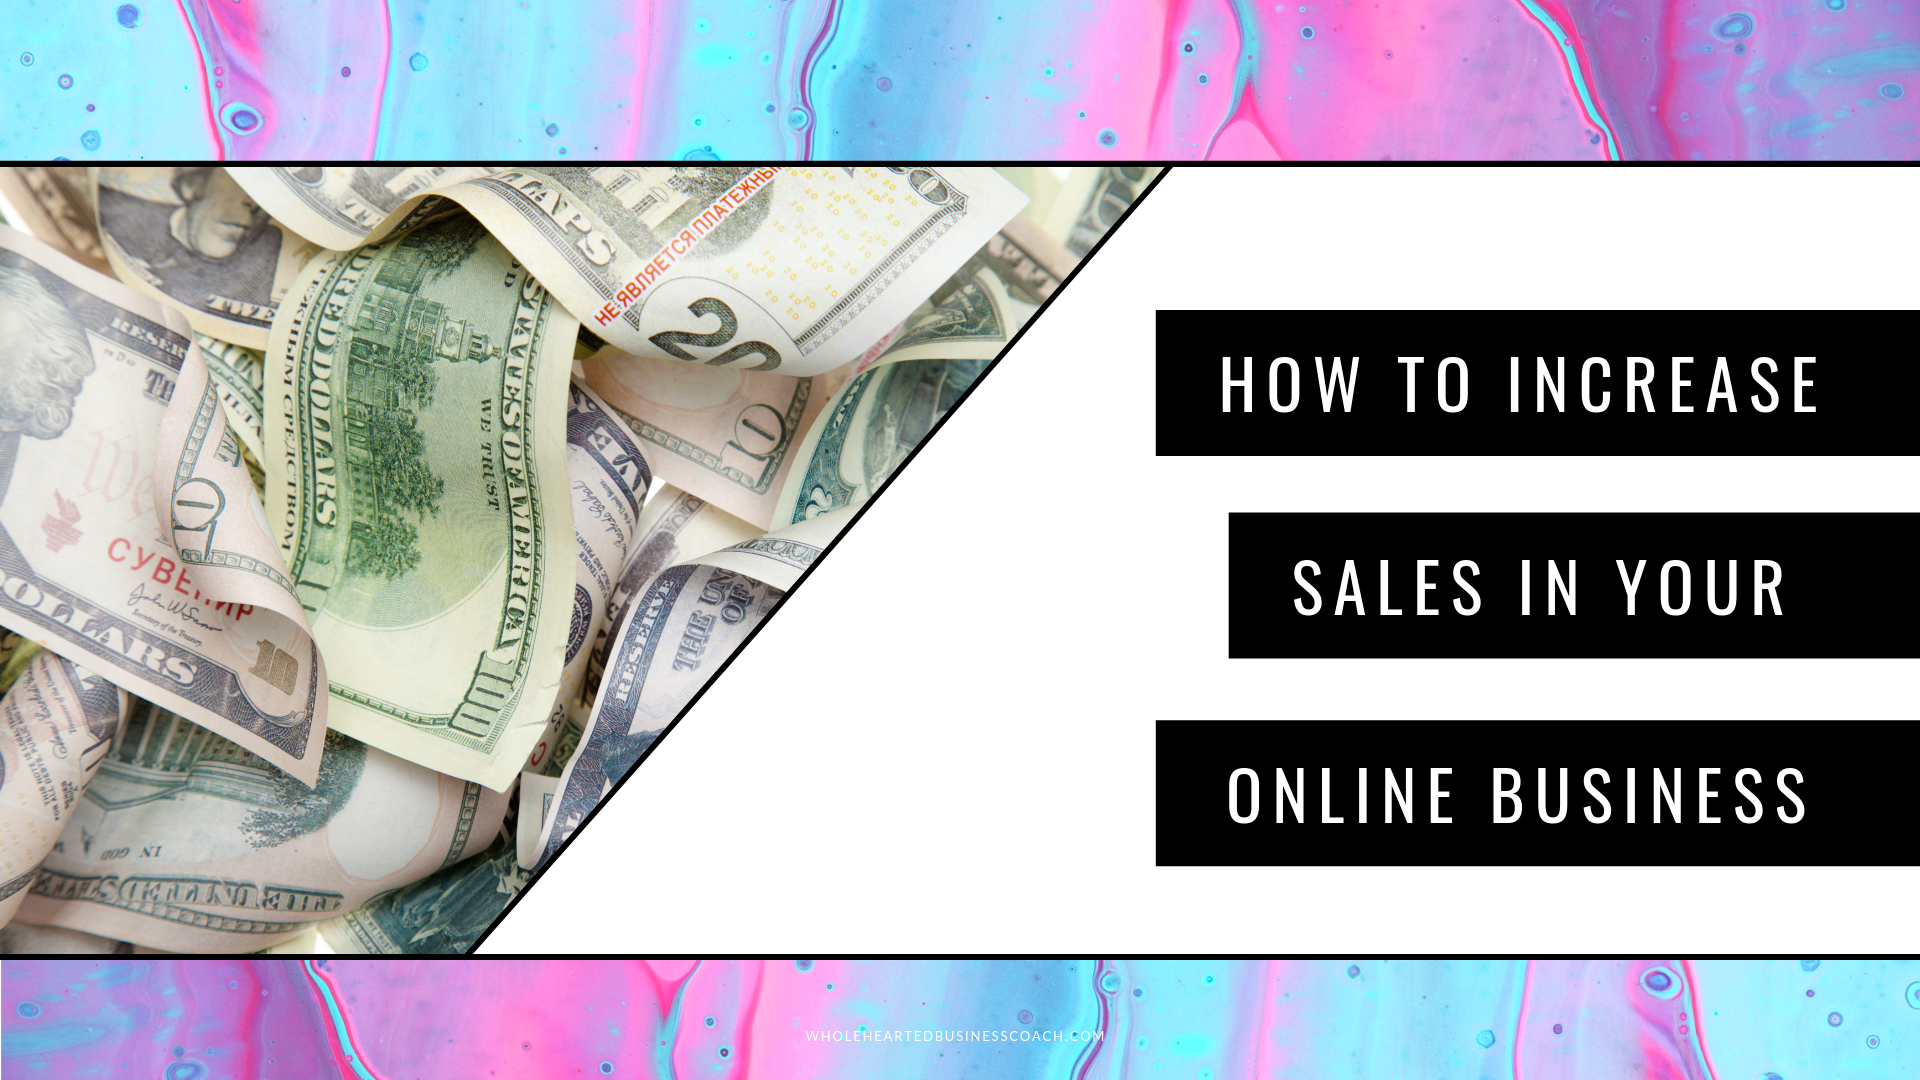 How to Increase Sales In Your Online Business | The 5 Secrets to Making More Sales Online